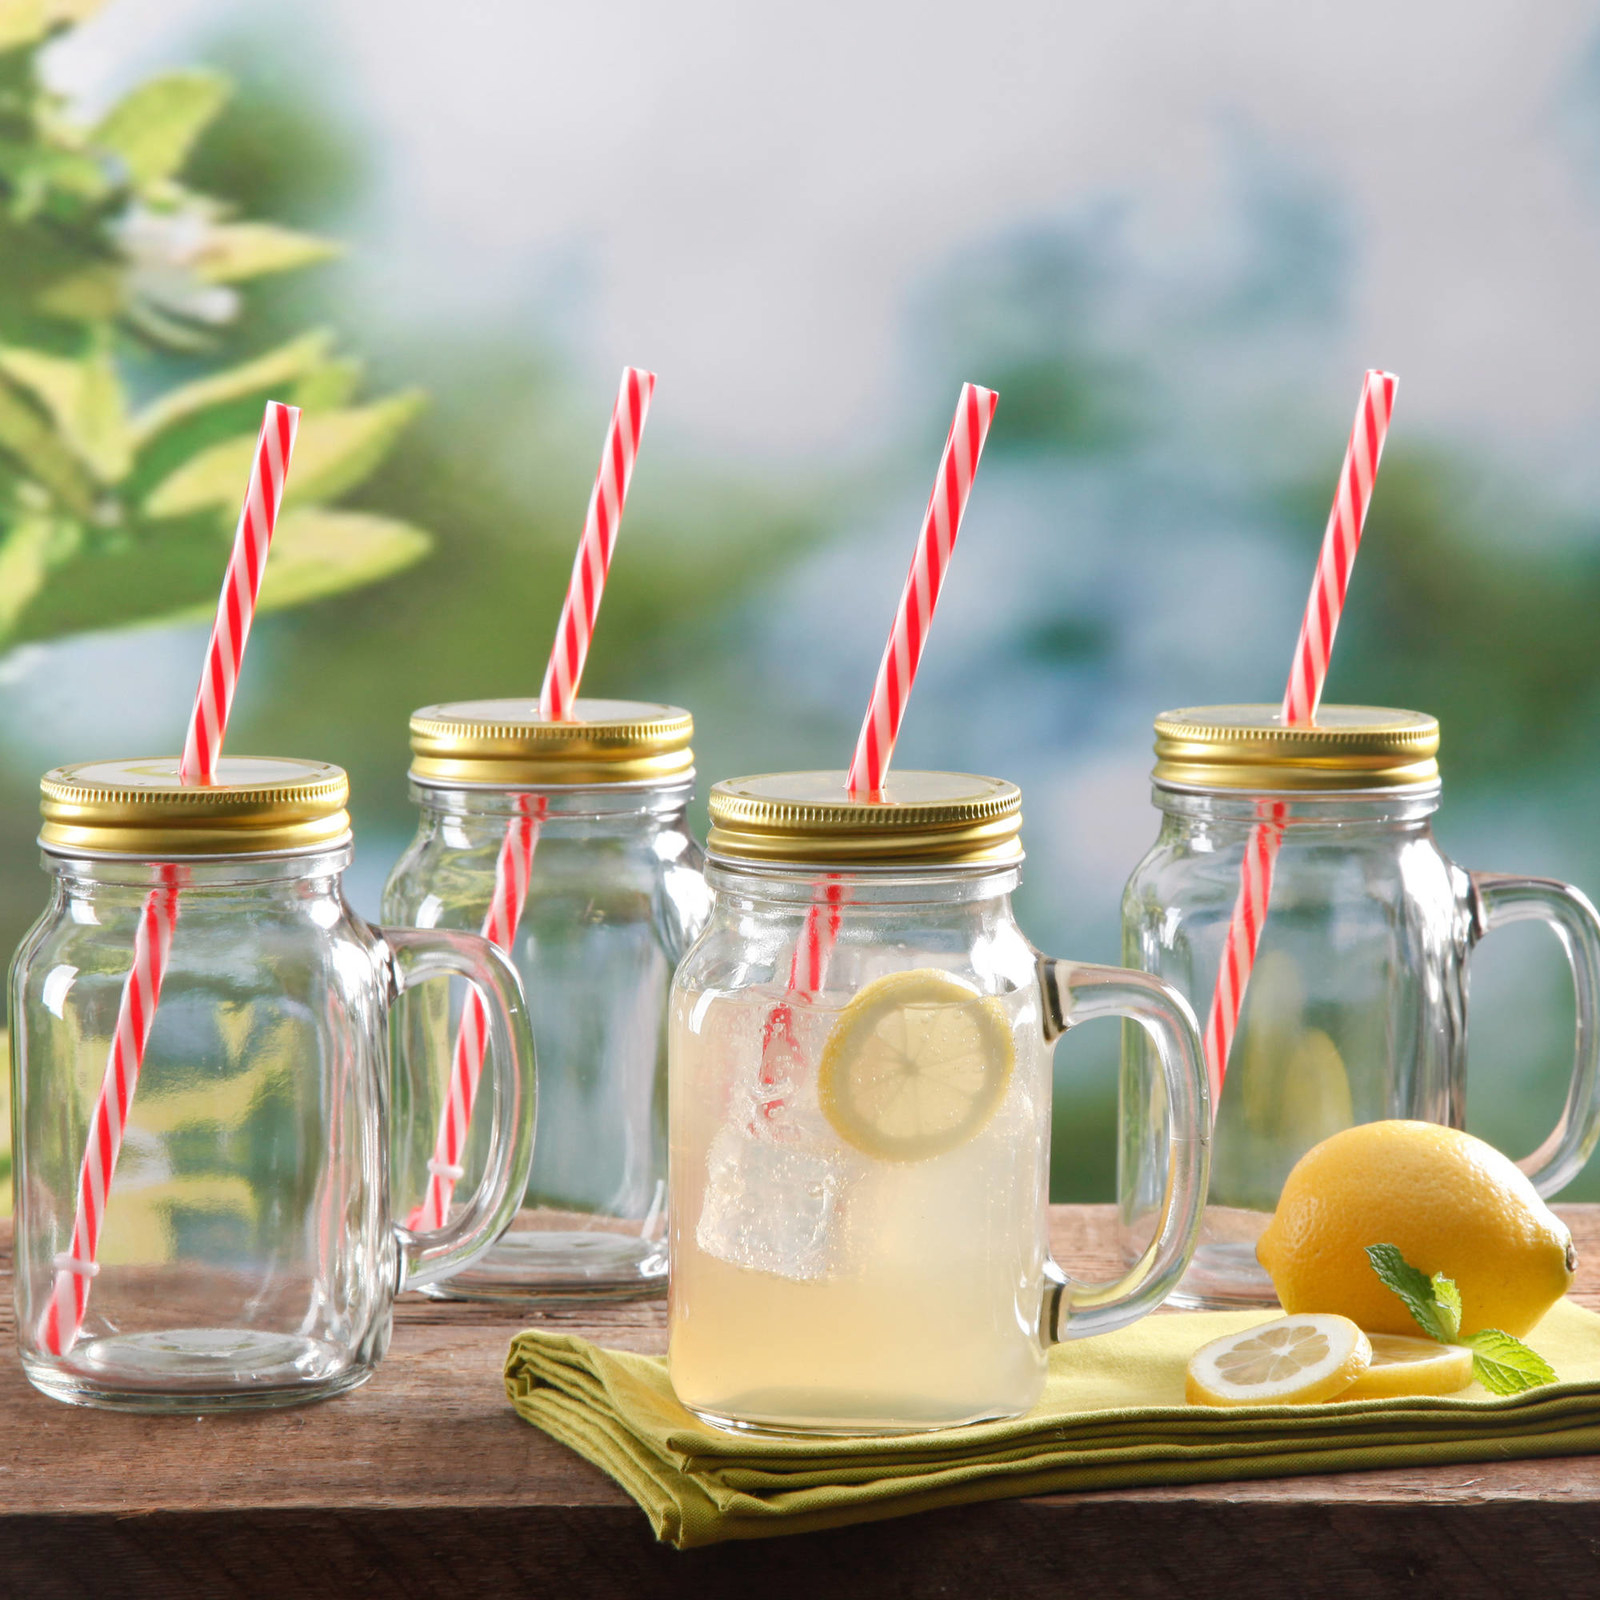 The mason jar drinking glasses with straws in them